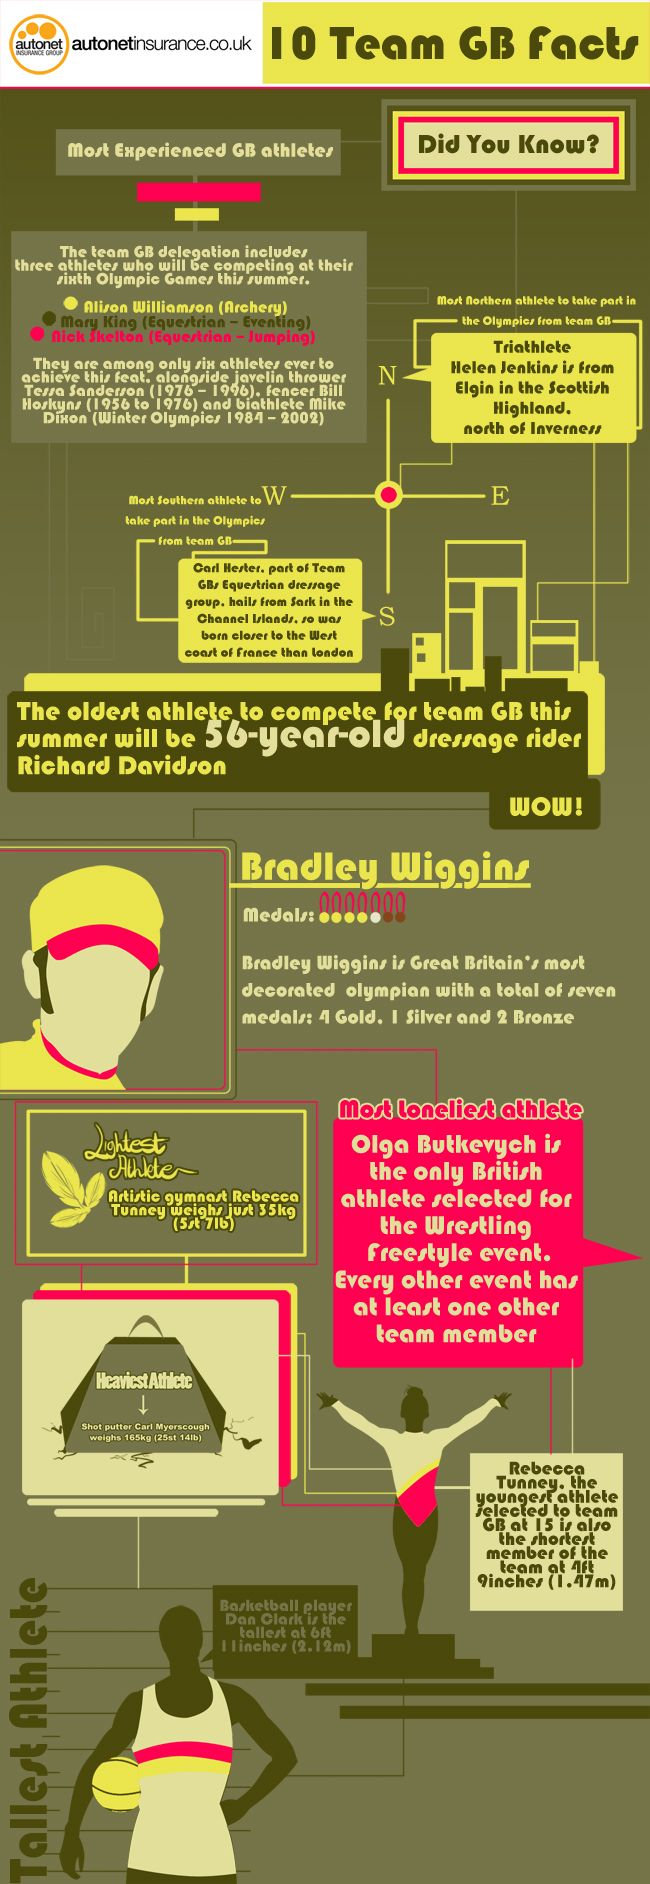 10 Team GB Facts | Visit our new infographic gallery at visualoop.com/